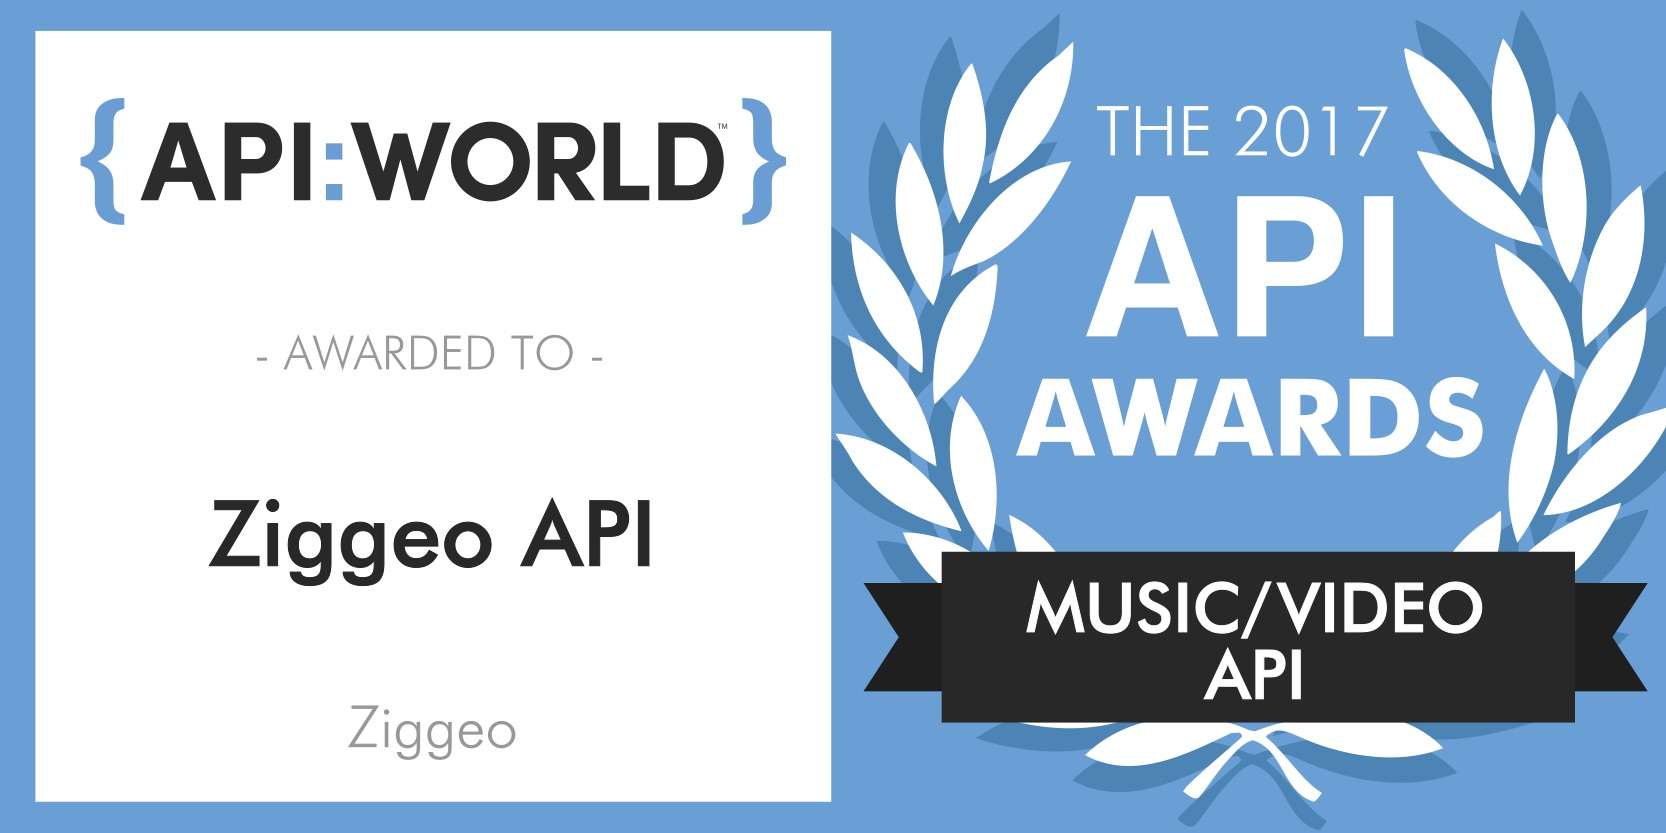 Ziggeo won the API:World 2017 Award for its API for Video Recording and Playback.